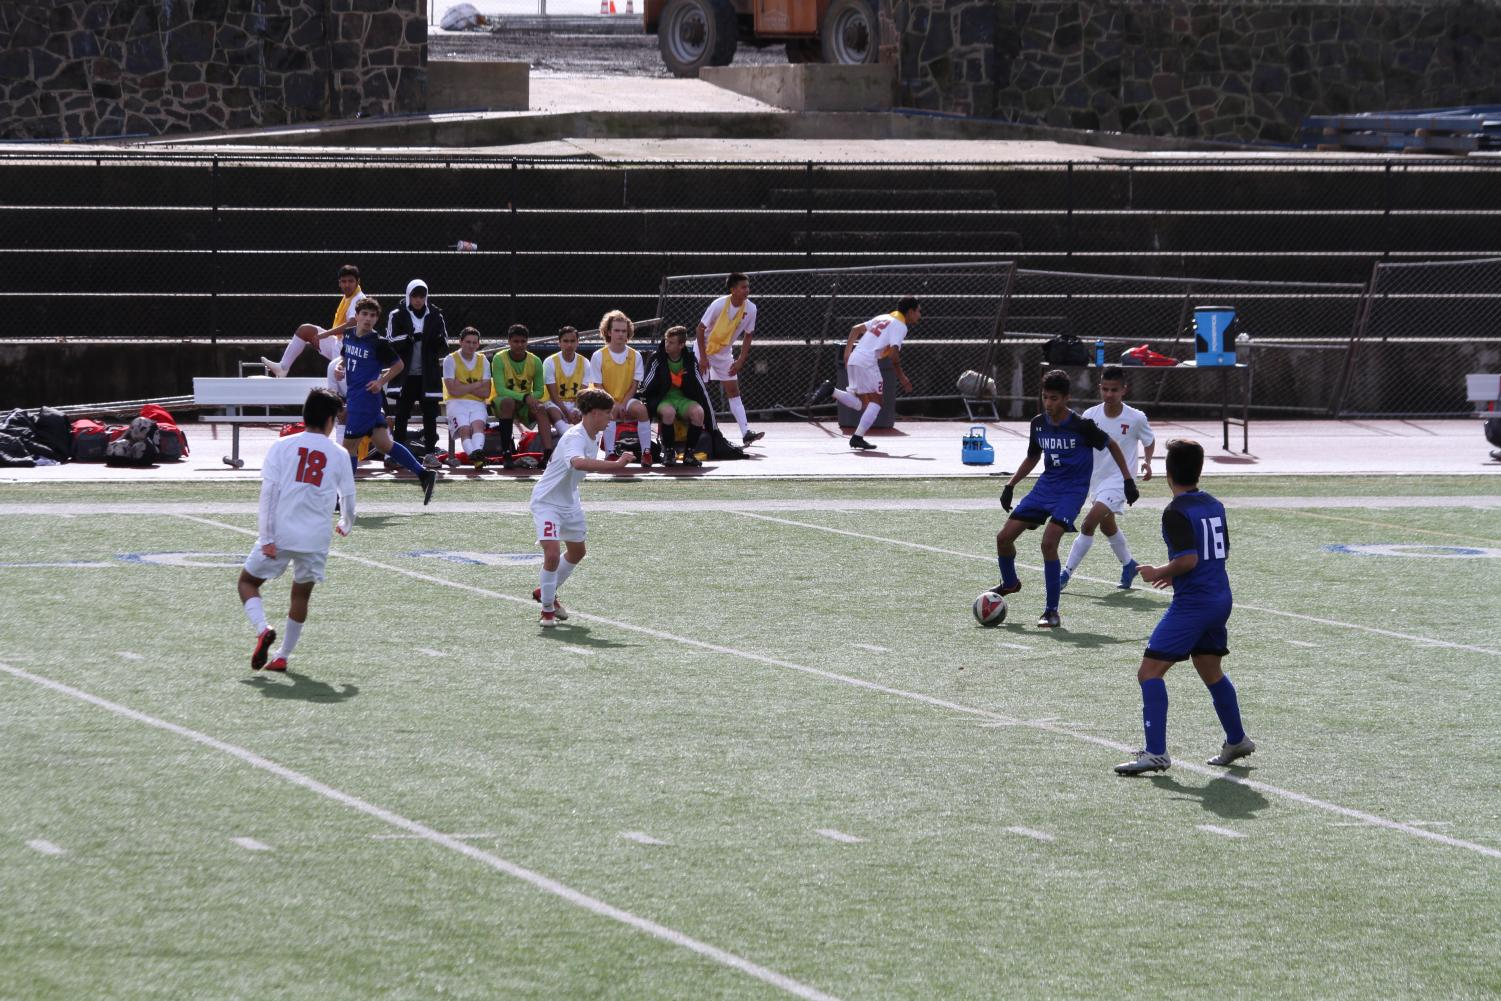 Junior Solomon Saboia gets ready to kick the ball. The team had a scrimmage game on December 31.